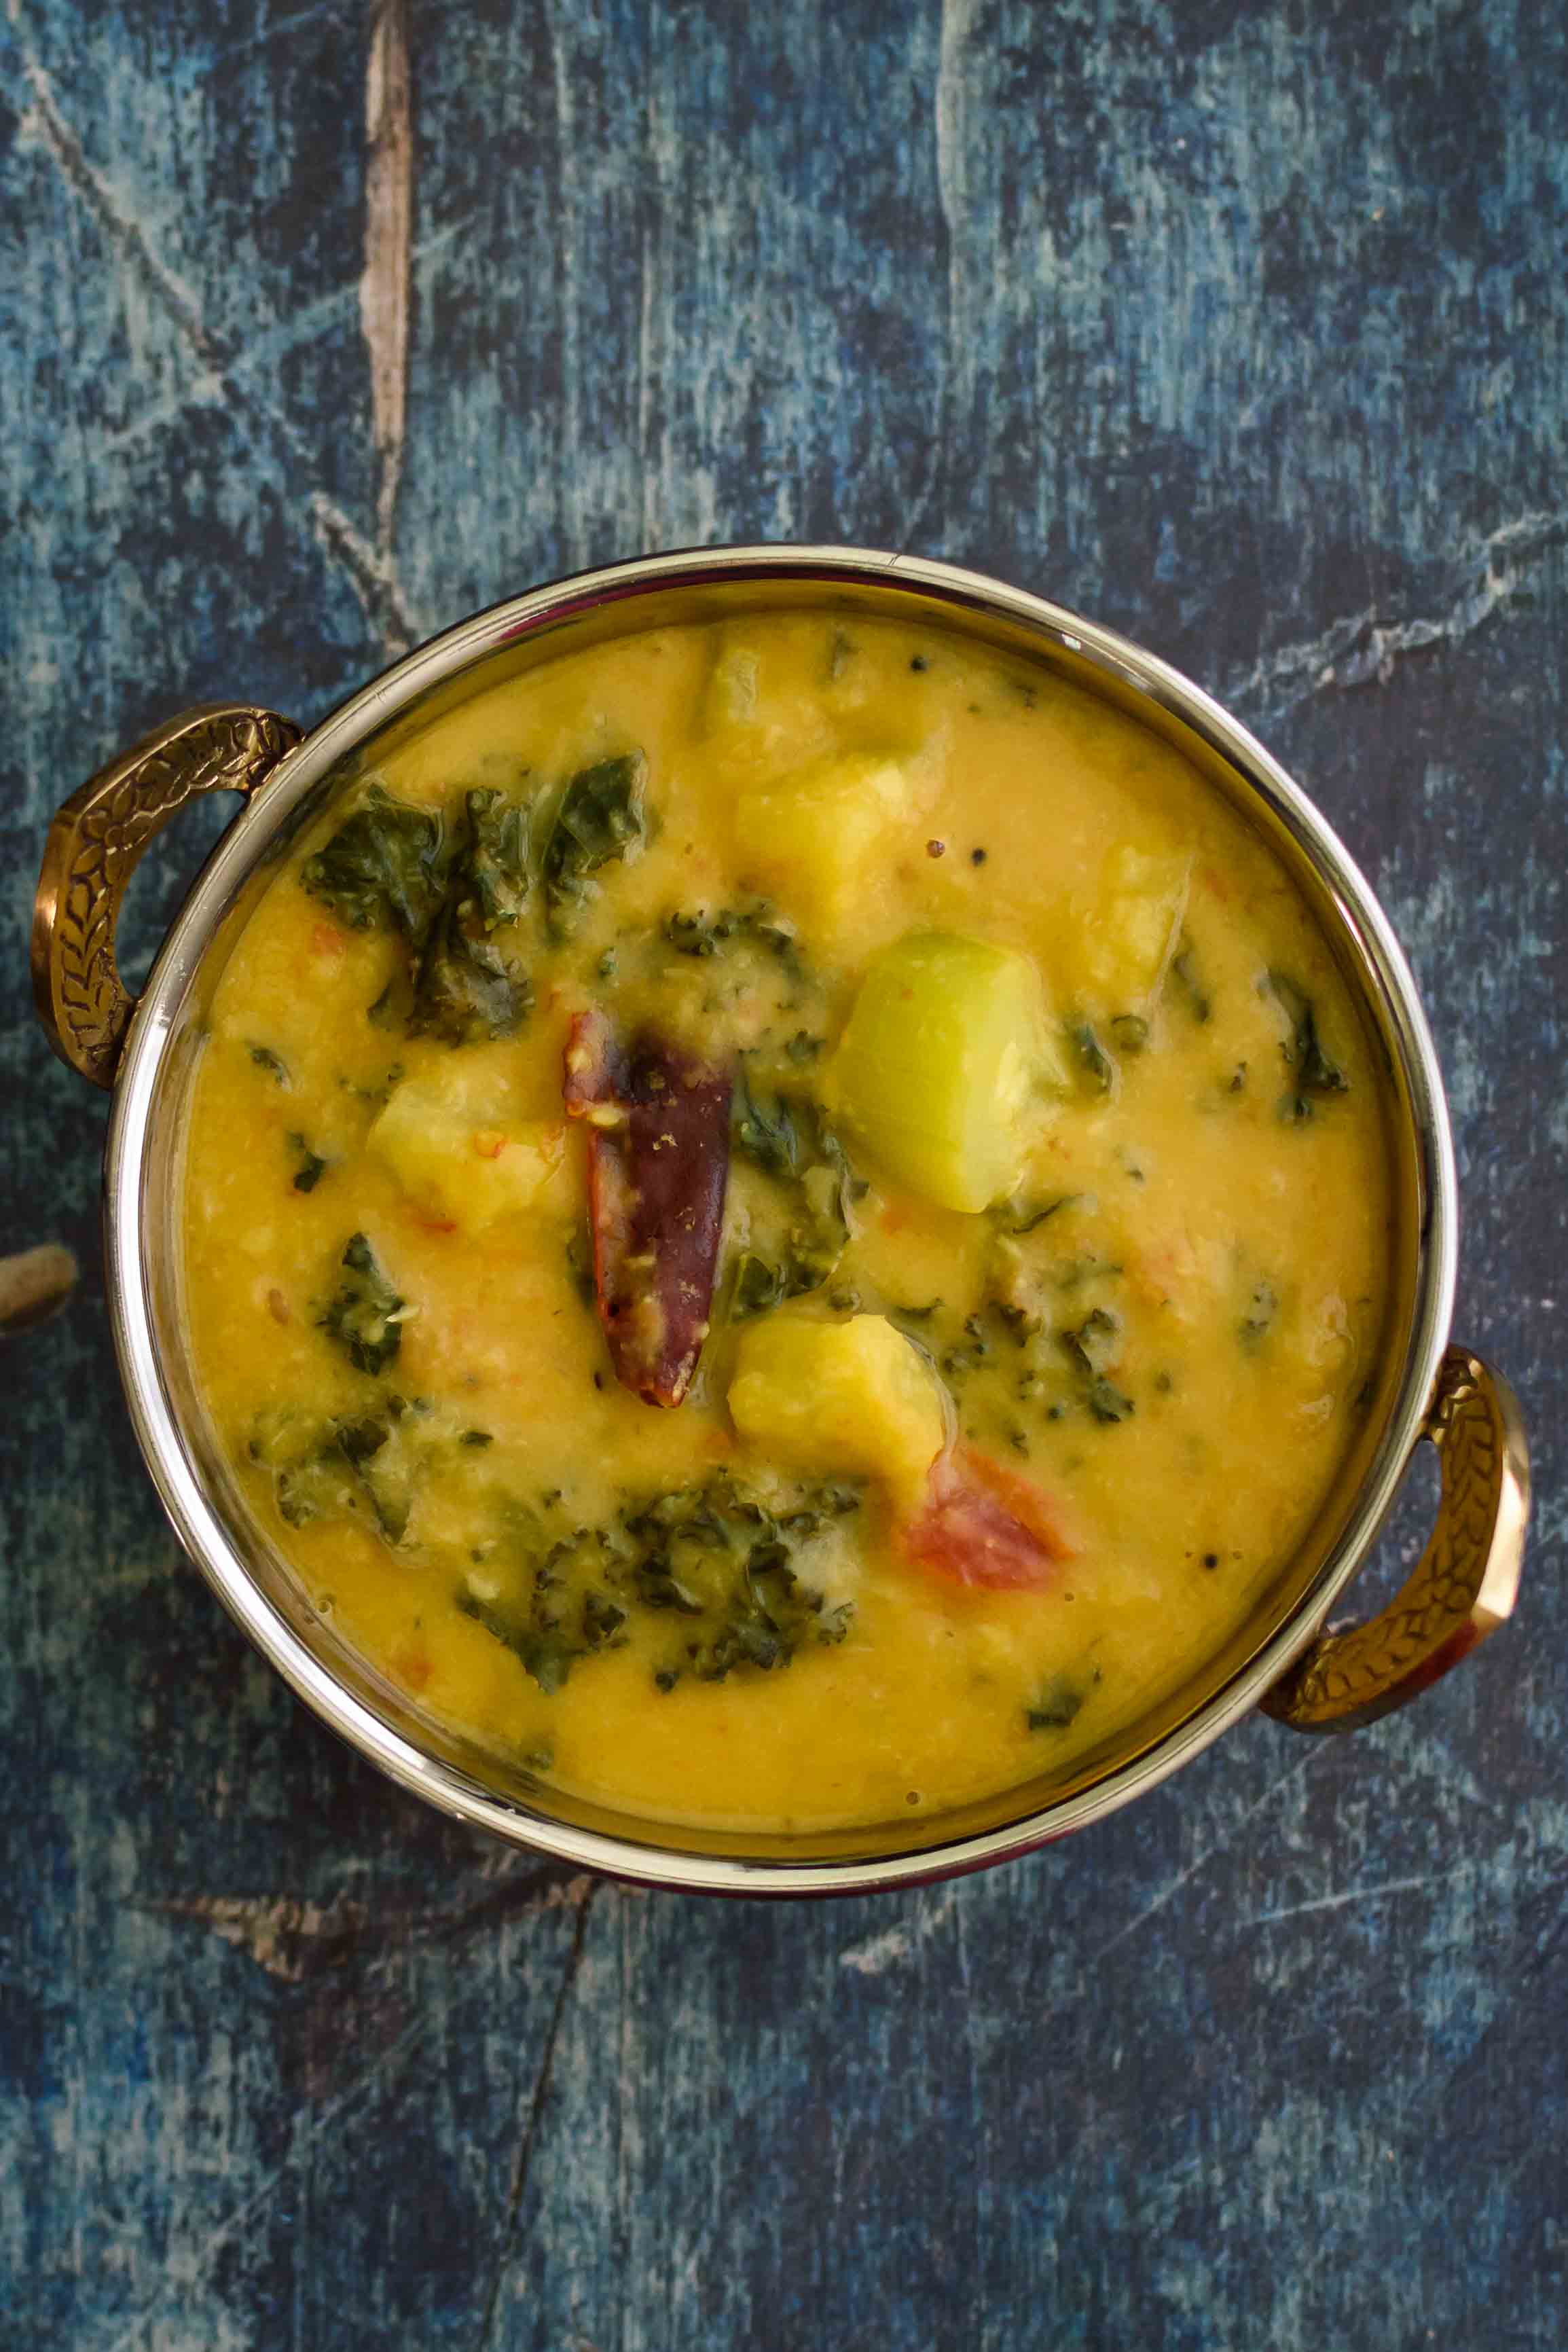 Kale and Zucchini Dal- Pepper Delight #pepperdelightblog #recipe #kaledal #dal #keralafood #indianrecipes #vegeterian #vegan #indianfood #zucchini #kalepappu #healthy #sidedish #kaleindianrecipe #zucchinidal #plantbased #cleaneating